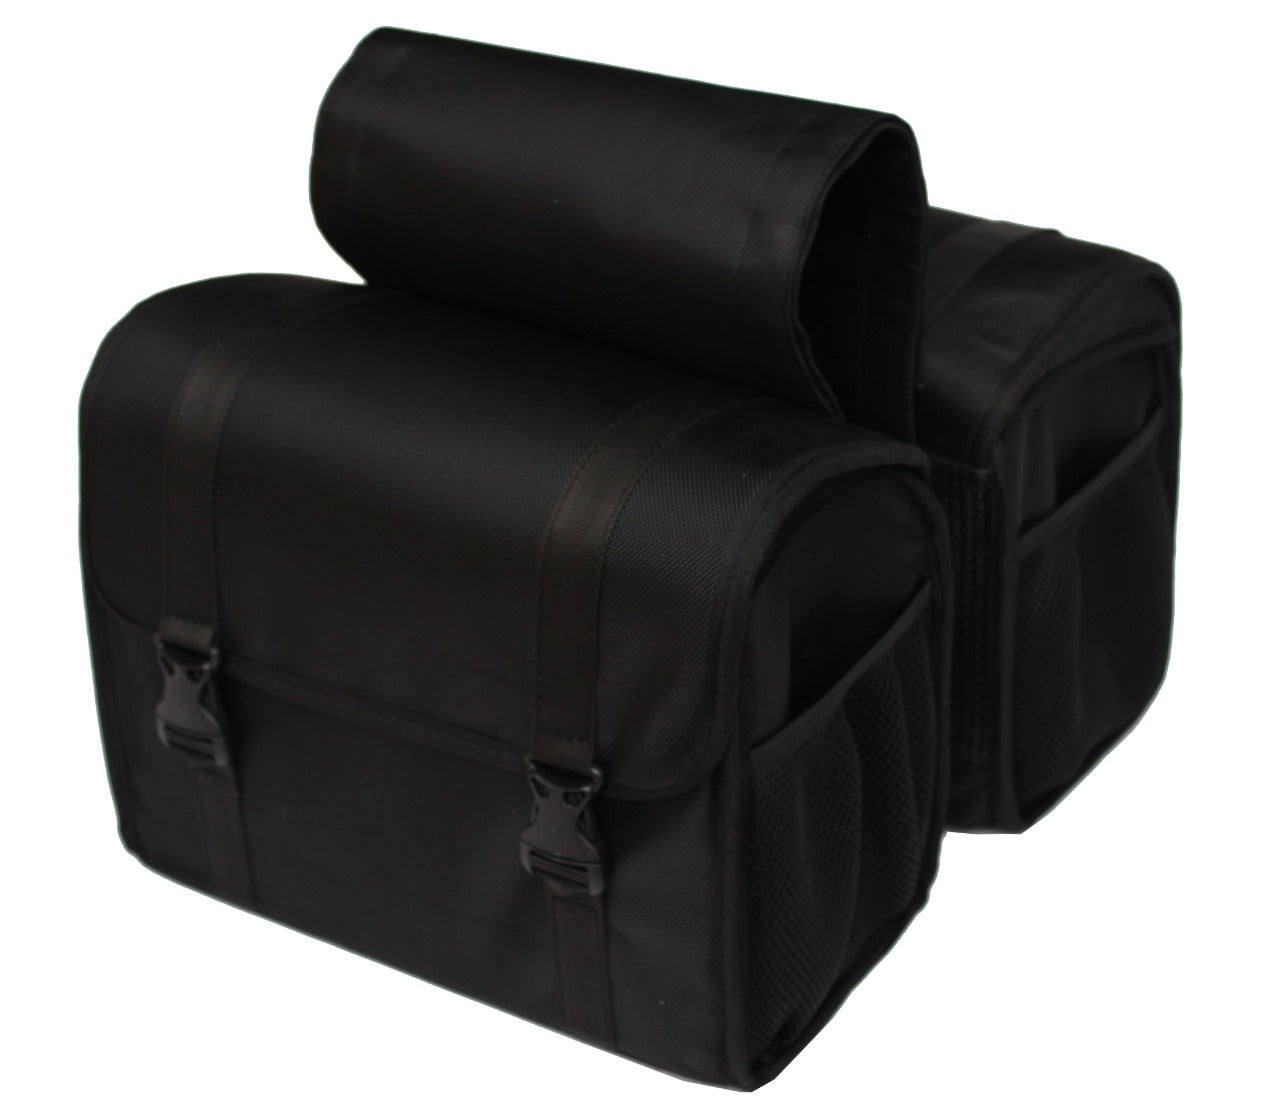 Shady Black Saddle Bag